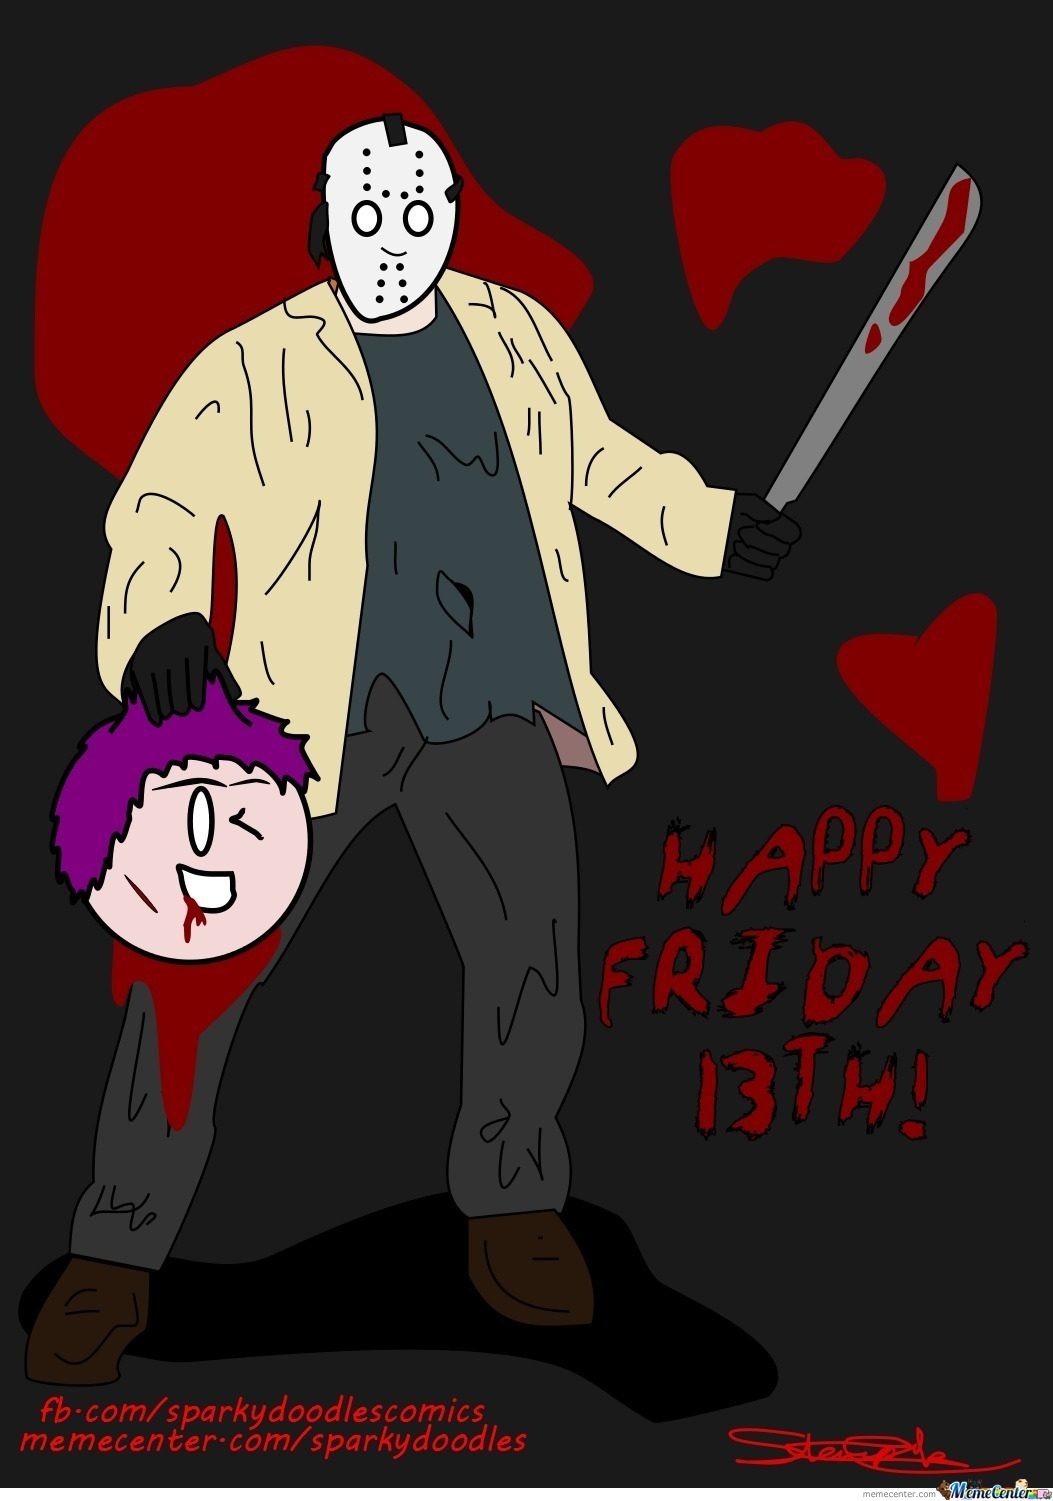 Sparky Doodles: Happy Friday 13Th!